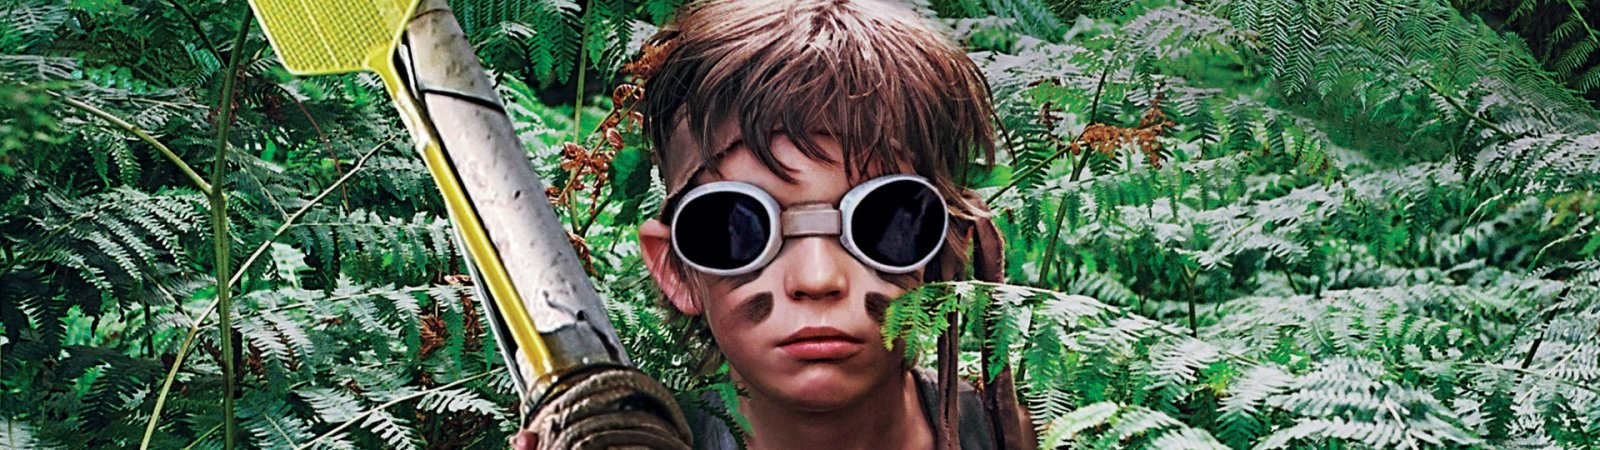 Photo du film : Le fils de Rambow